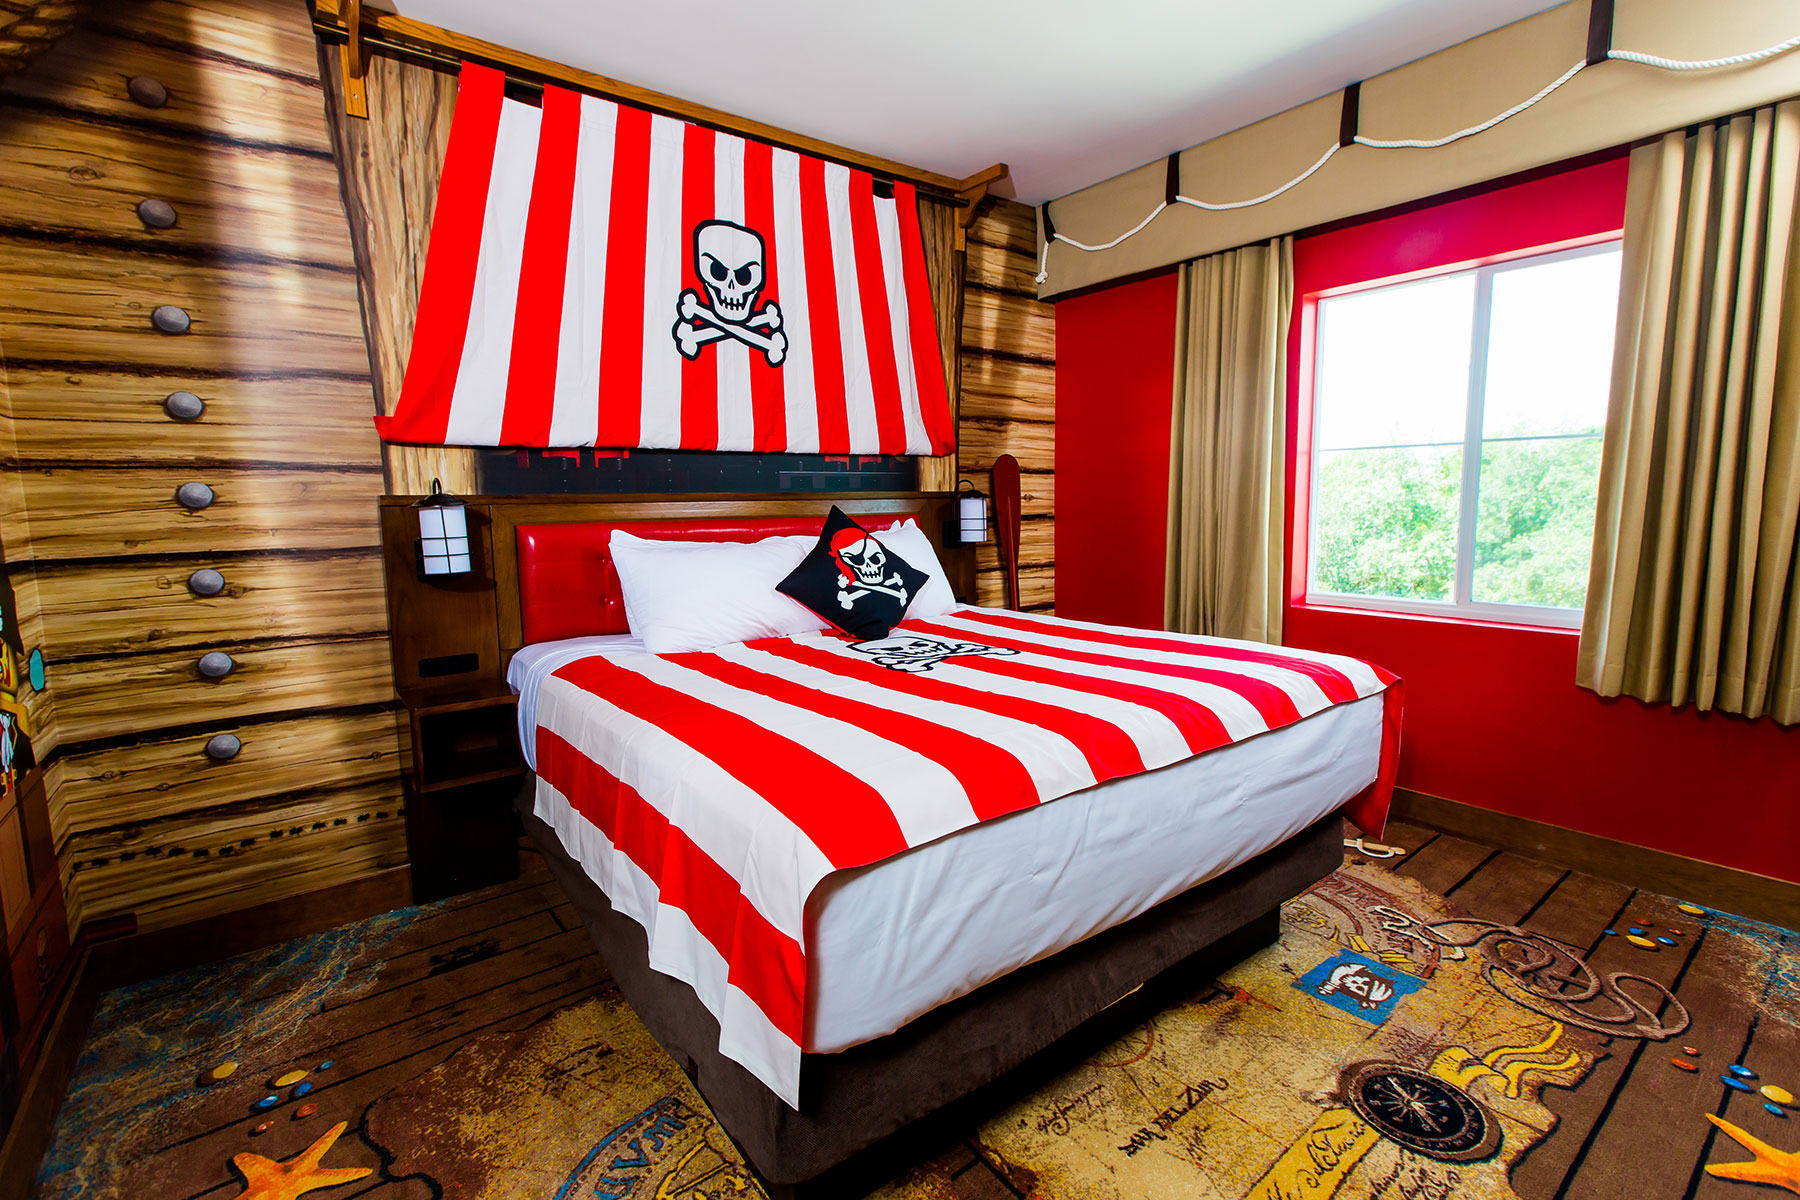 Set sail with Pirate Rooms